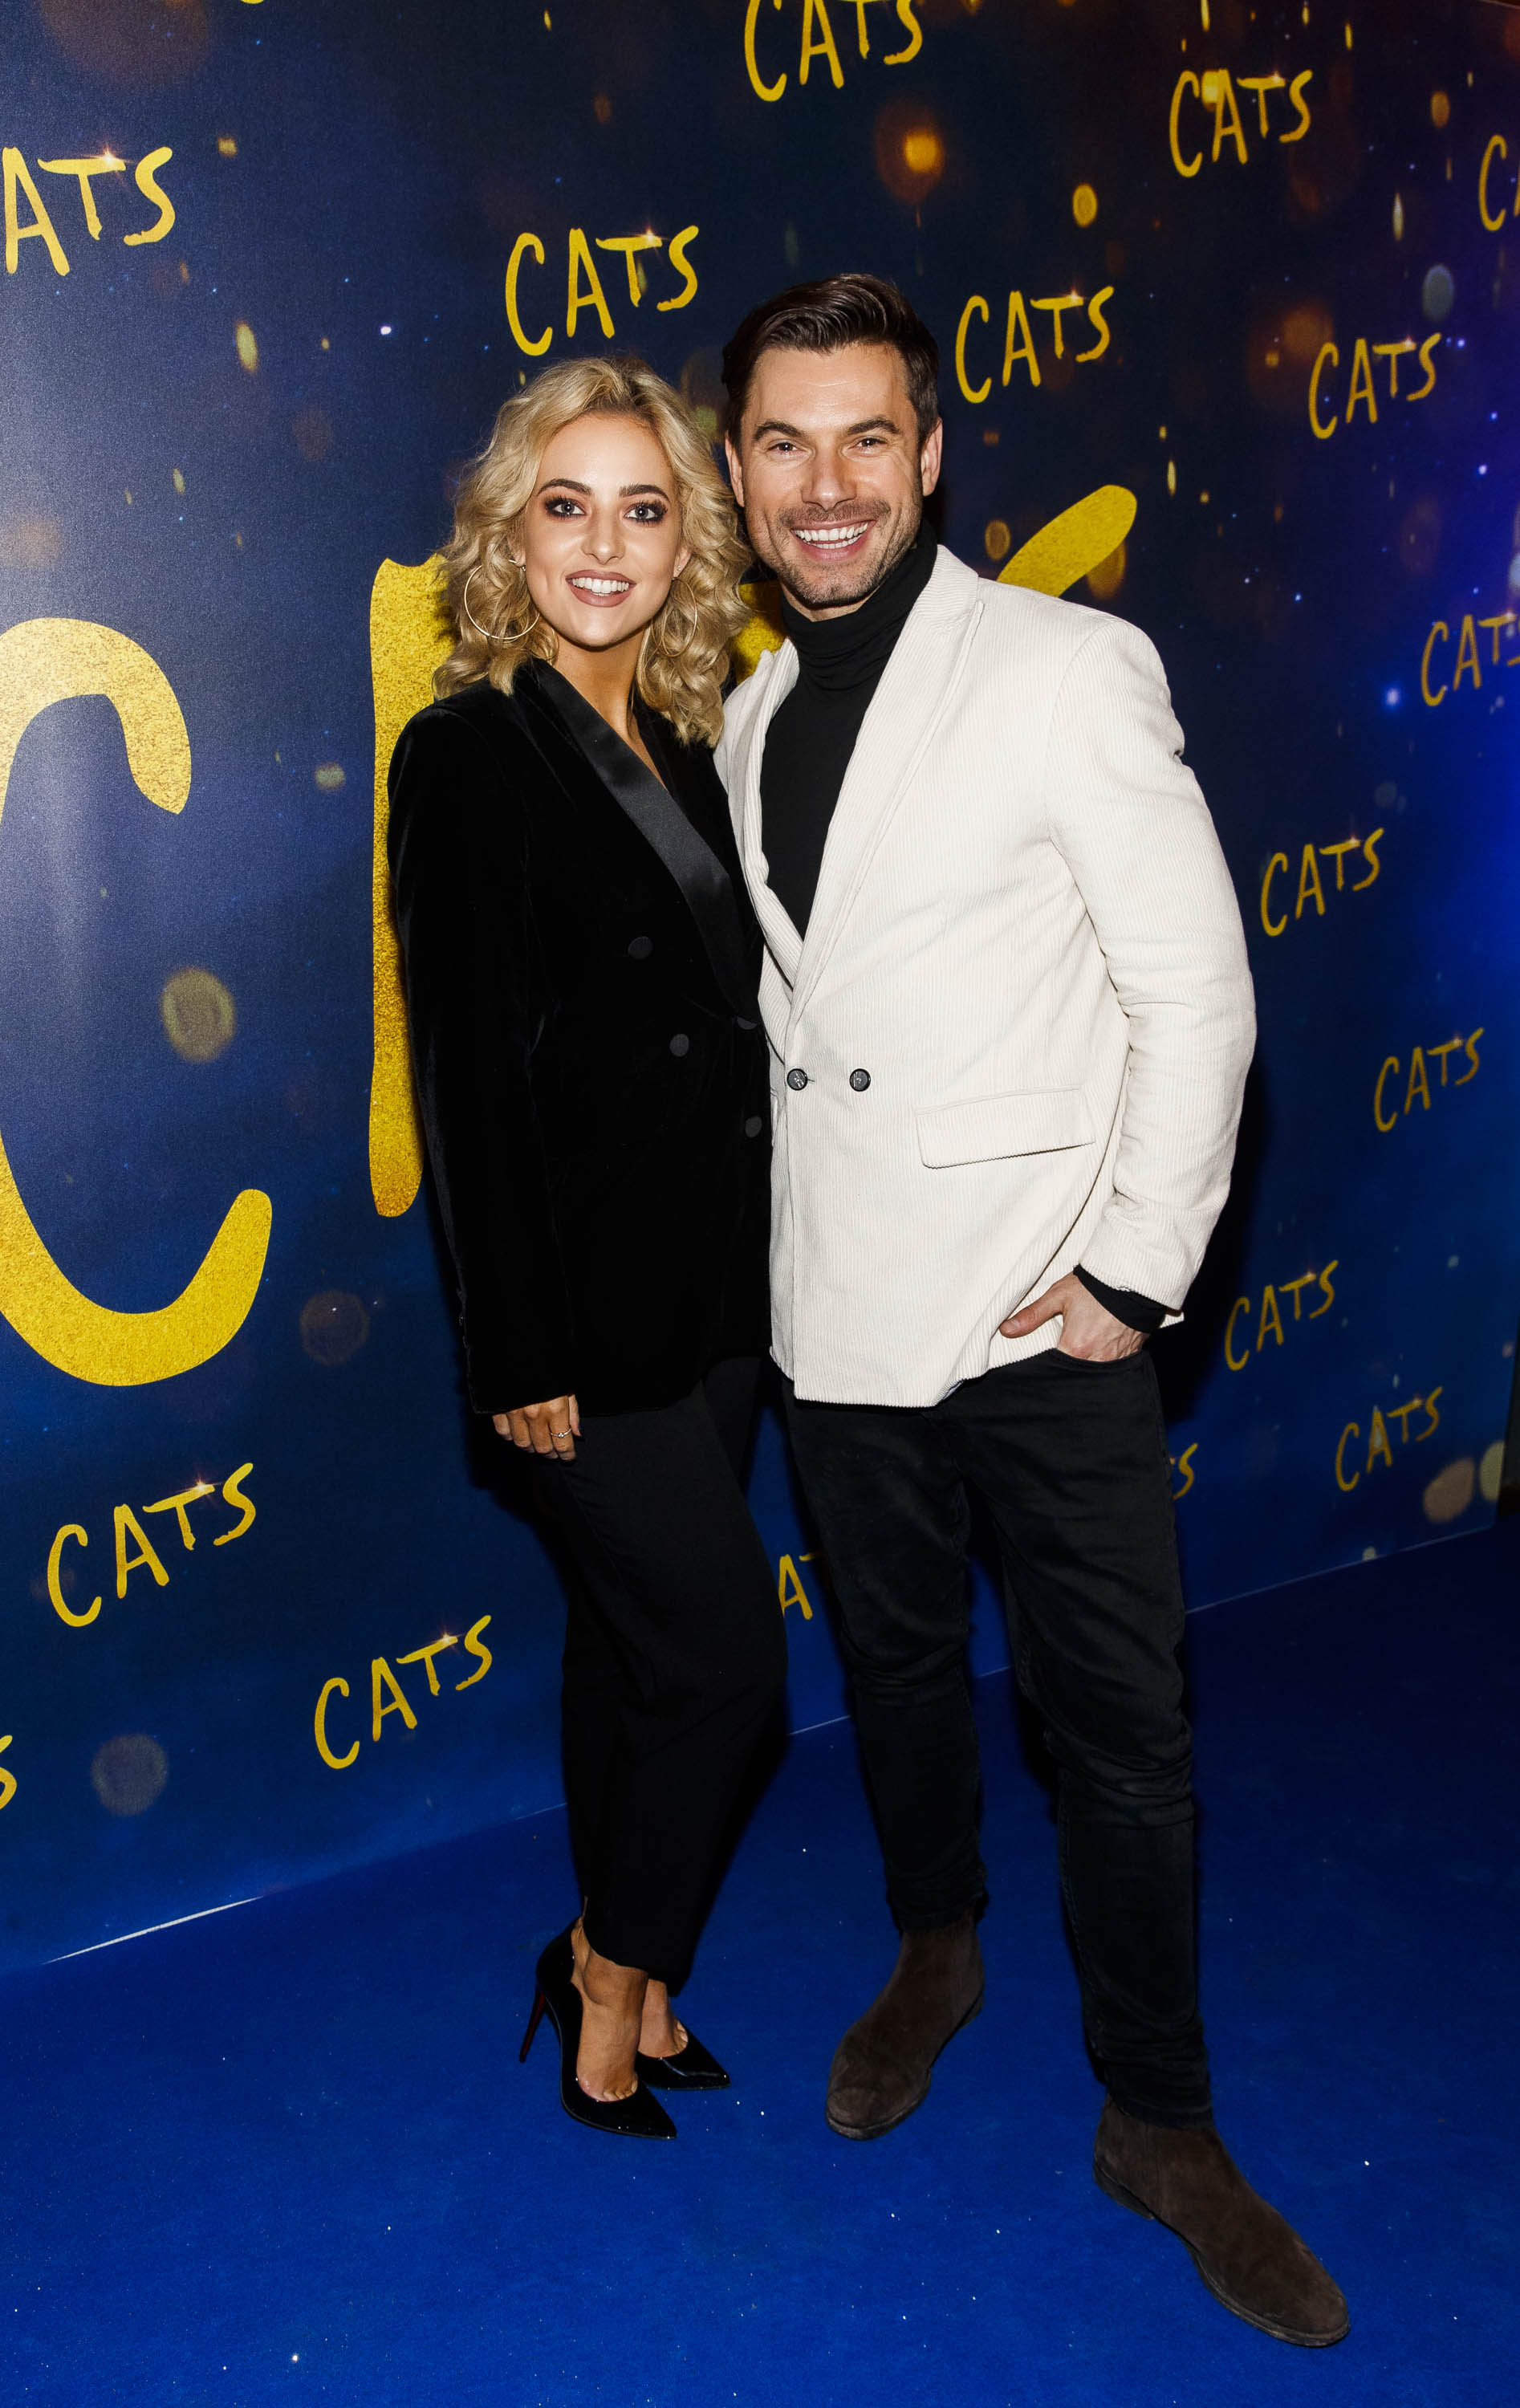 Dancing with the Stars Laura Nolan with dance partner Robert Rowinski pictured at the Irish premiere screening of 'Cats' at The Stella Theatre, Rathmines. Picture: Andres Poveda